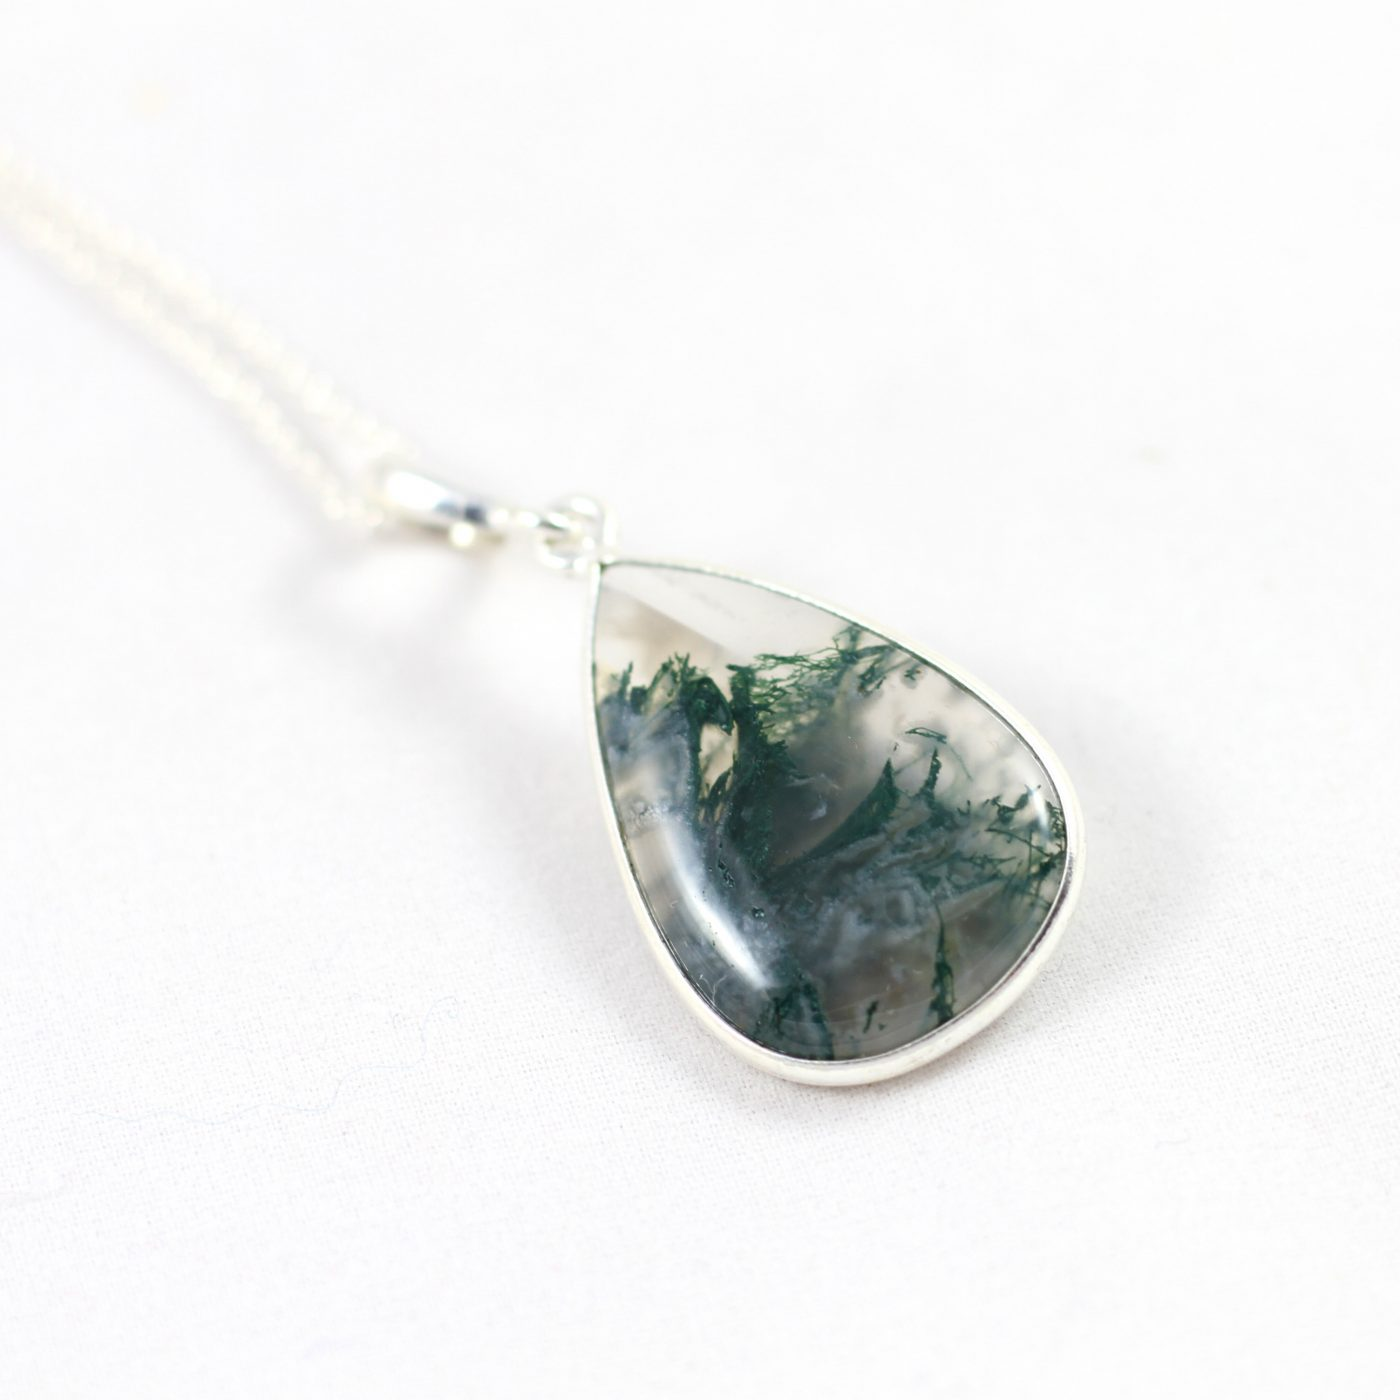 pendant nck open agate necklace back sterling silver opnbck moss mossagate oval shoreline product